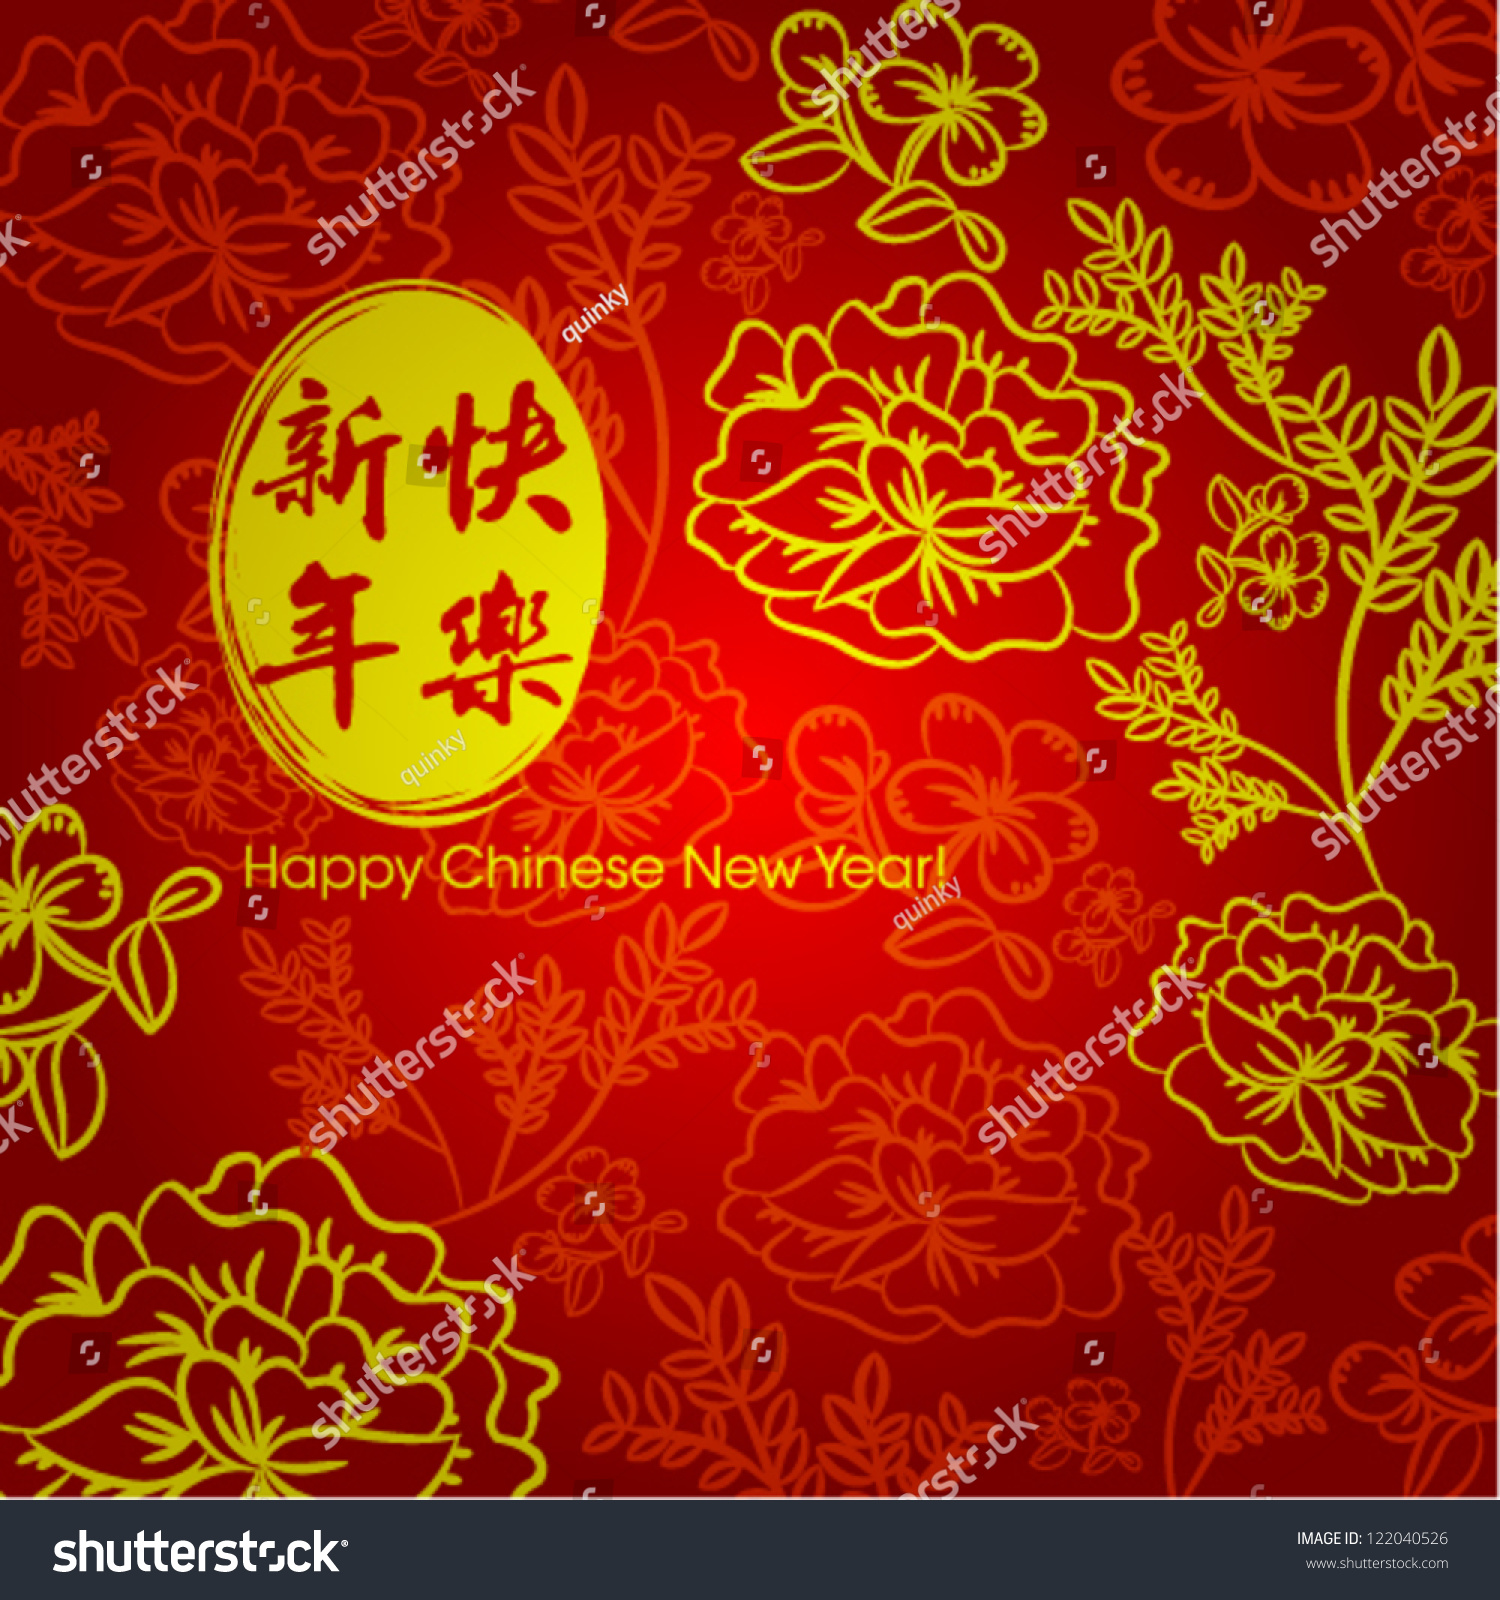 Happy Chinese New Year Greeting Card Stock Vector